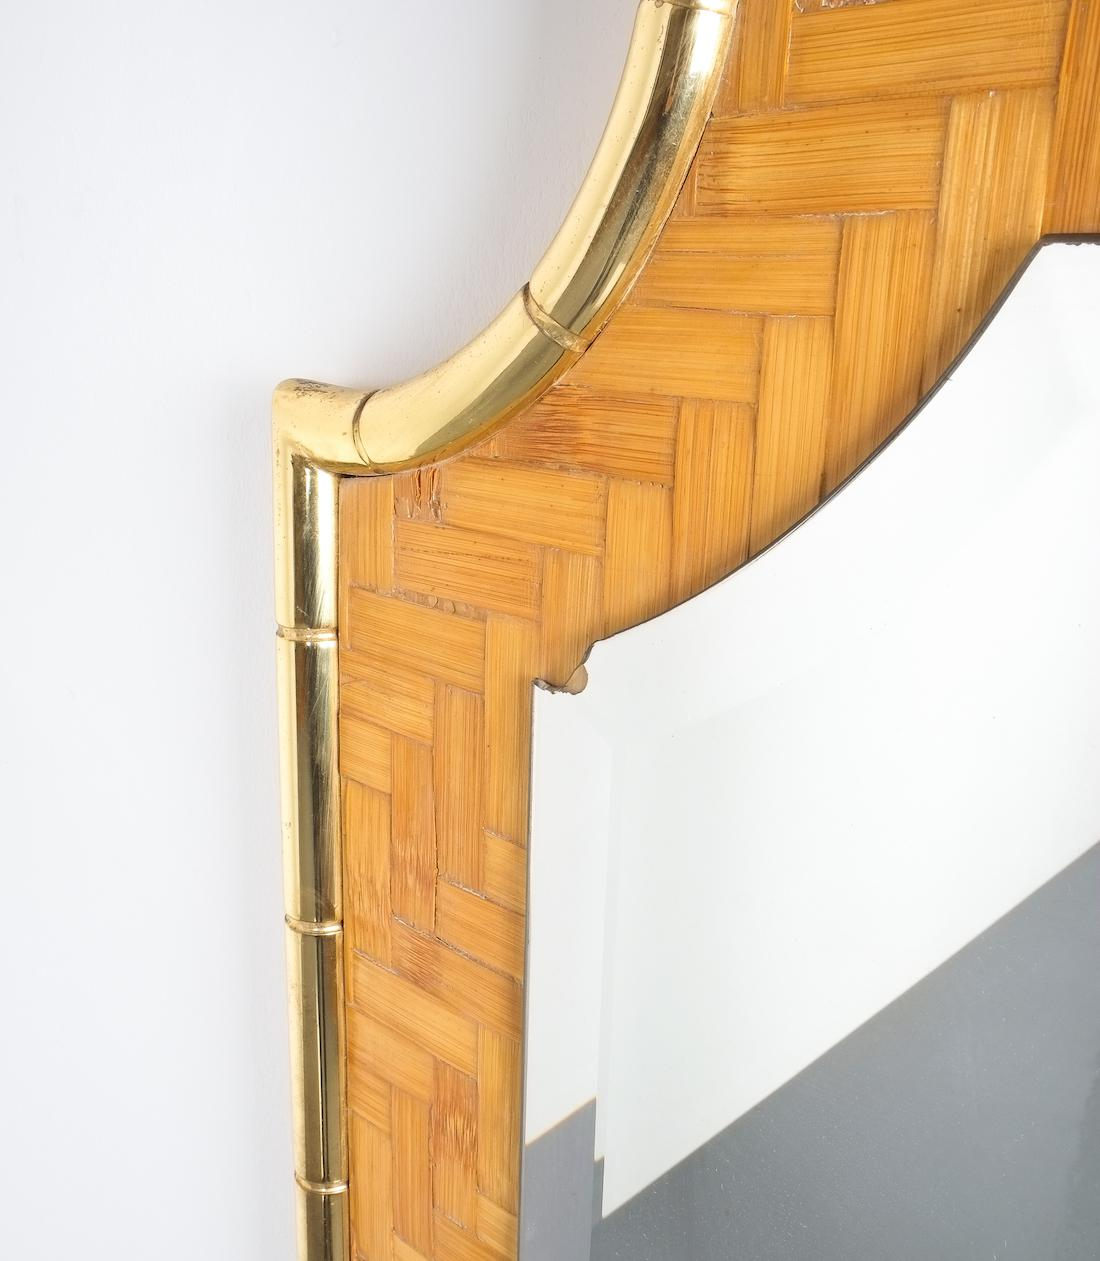 Bamboo Brass Console Table And Mirror Manner Gabriella Crespi, Italy 1950    Image 9 Of